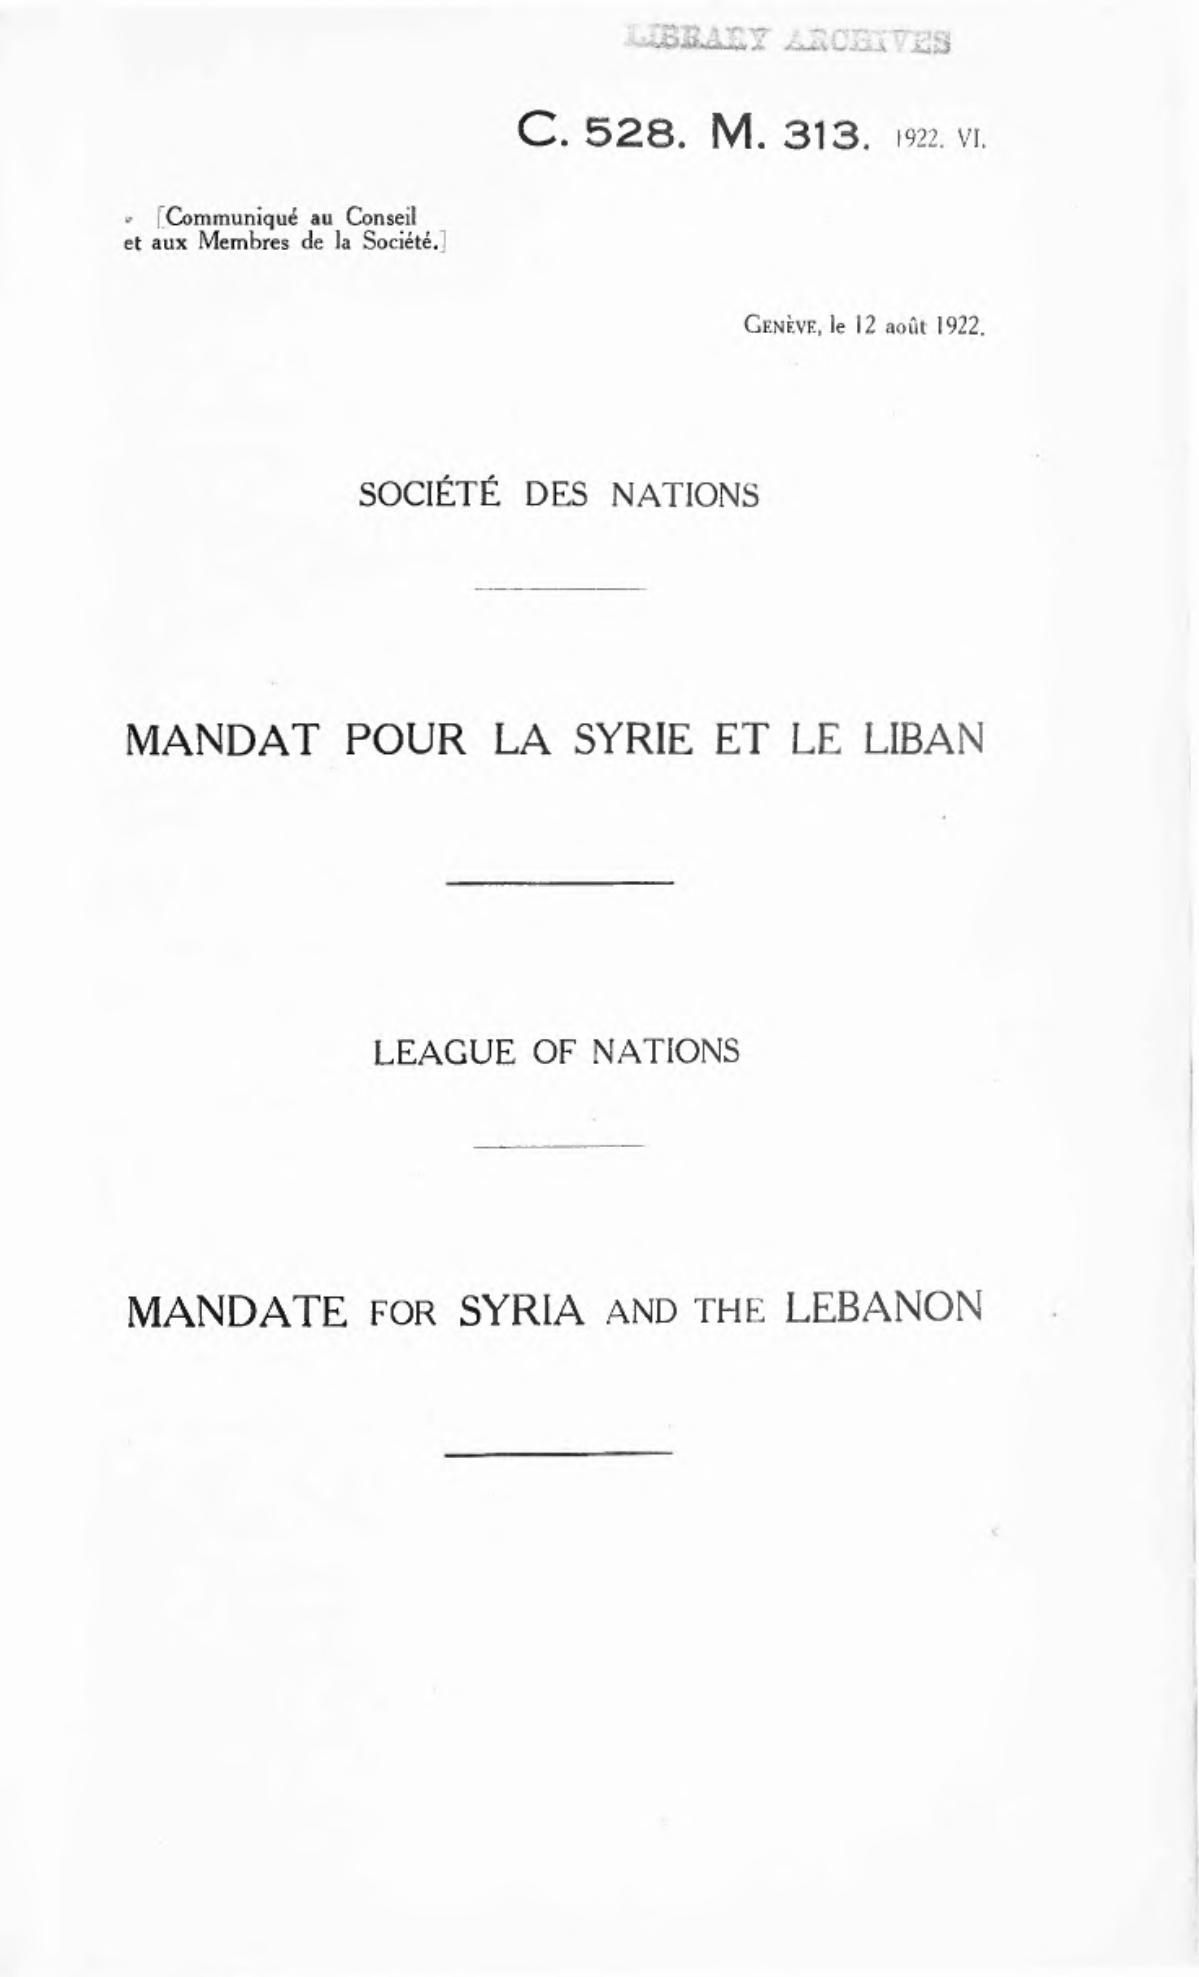 Mandate for Syria and the Lebanon - Wikipedia